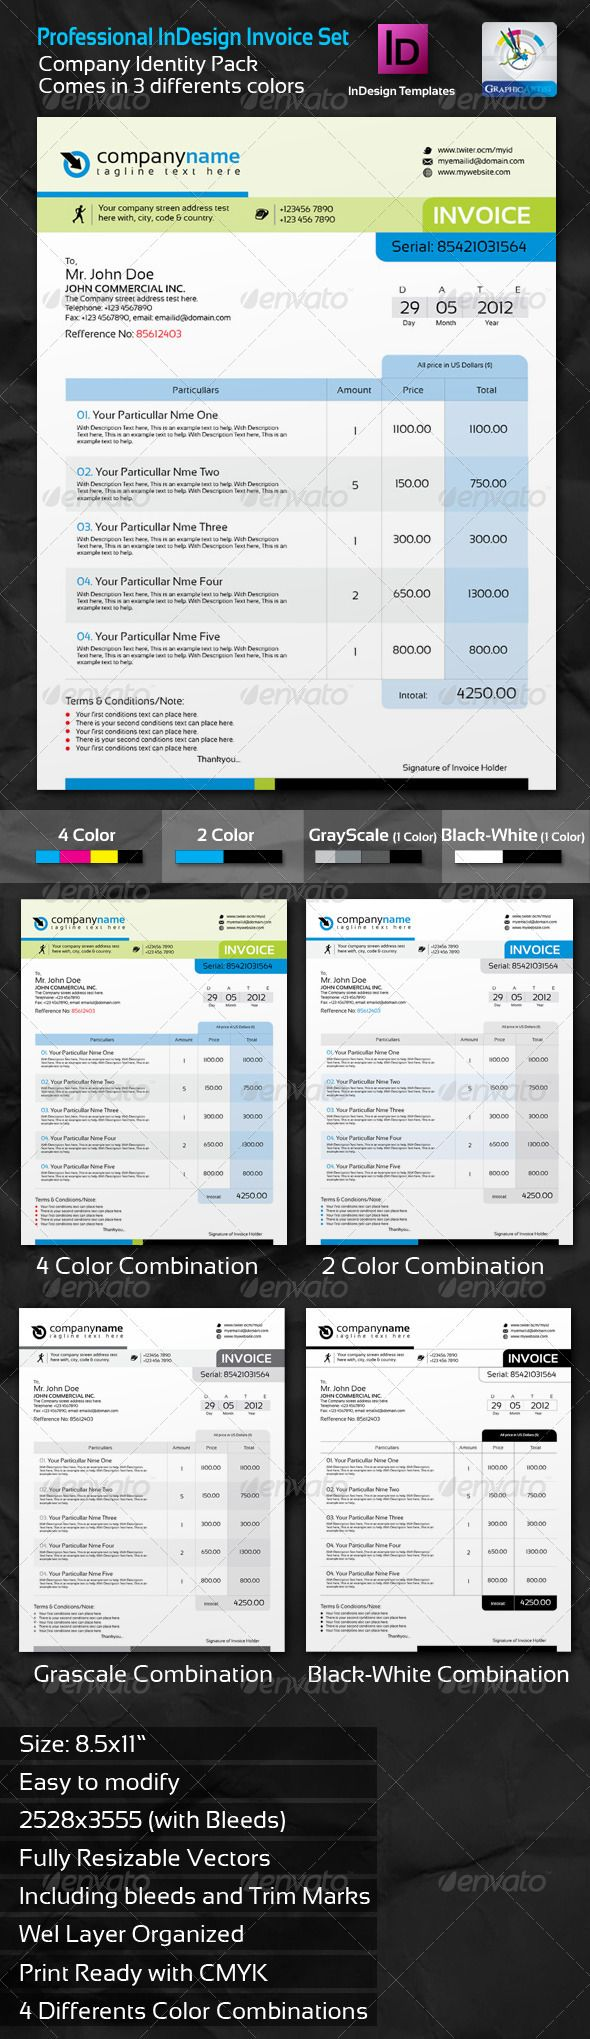 professional invoice indesign template set fonts invoice template and colors. Black Bedroom Furniture Sets. Home Design Ideas